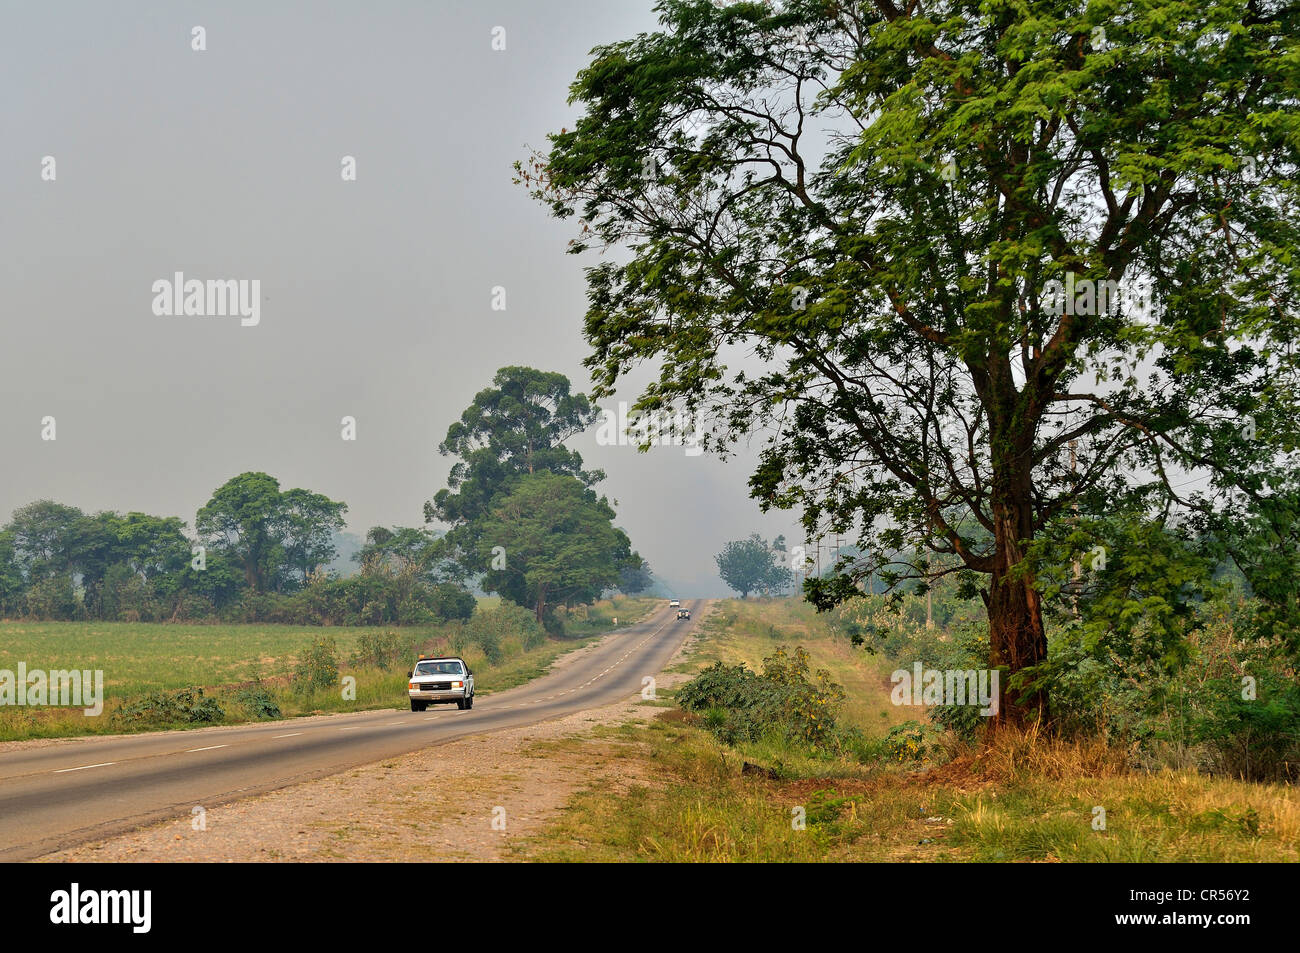 Energy crops such as soybeans, sugar cane and tropical woods are exported from the Gran Chaco region on state highway - Stock Image